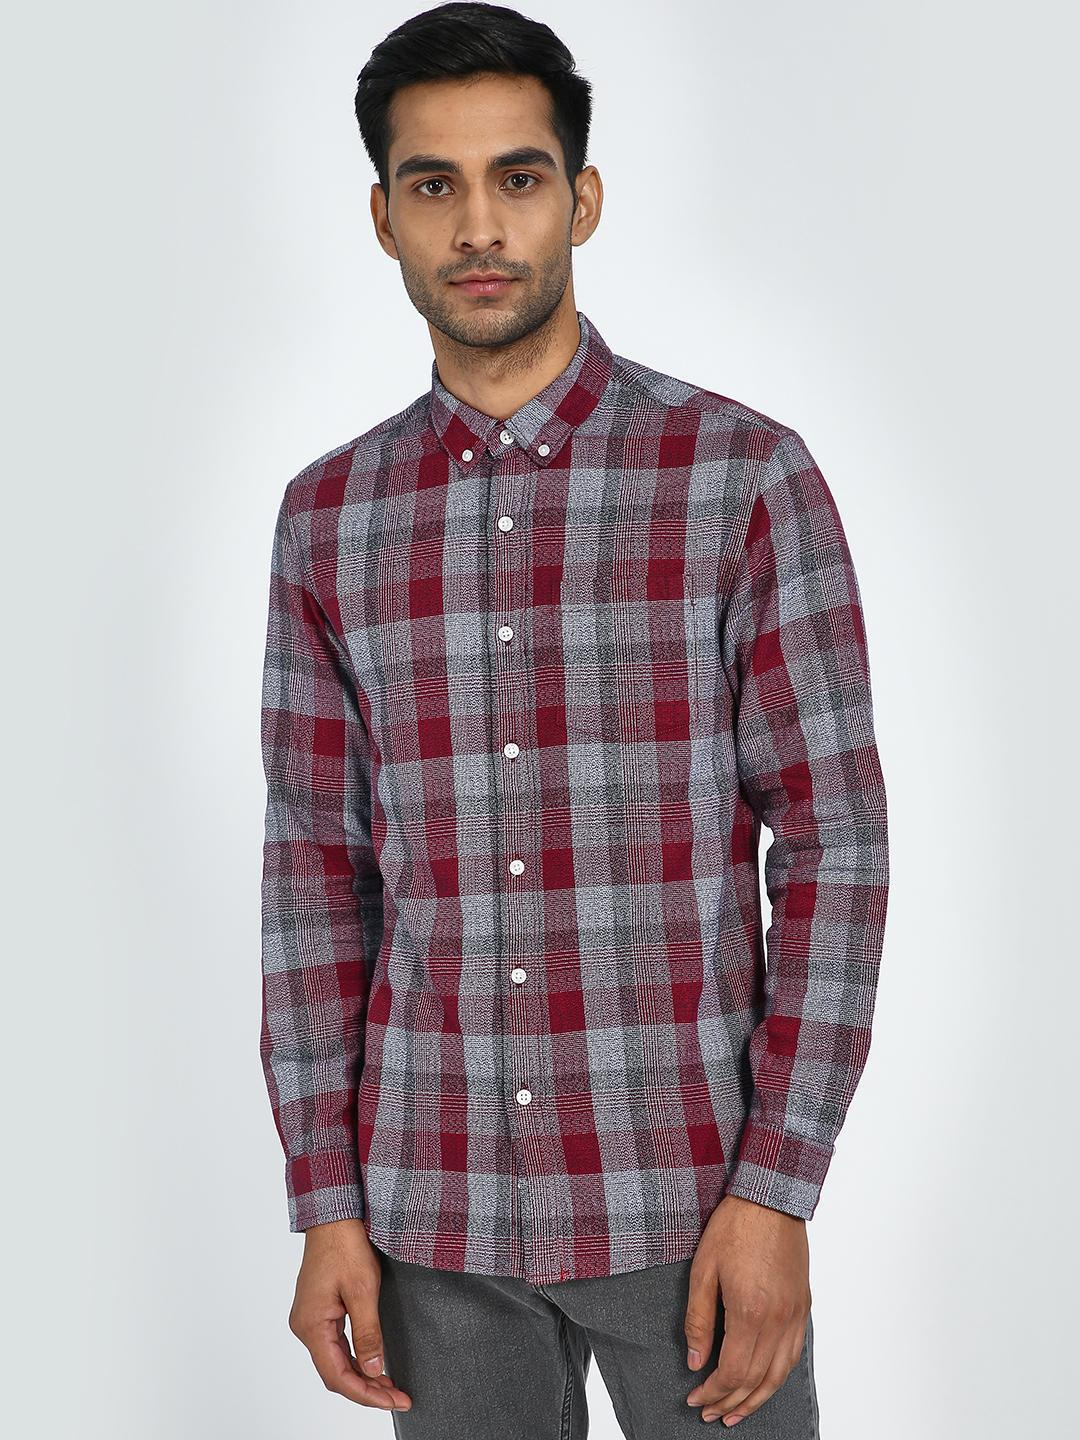 Blue Saint Red/Black Long Sleeve Plaid Check Shirt 1